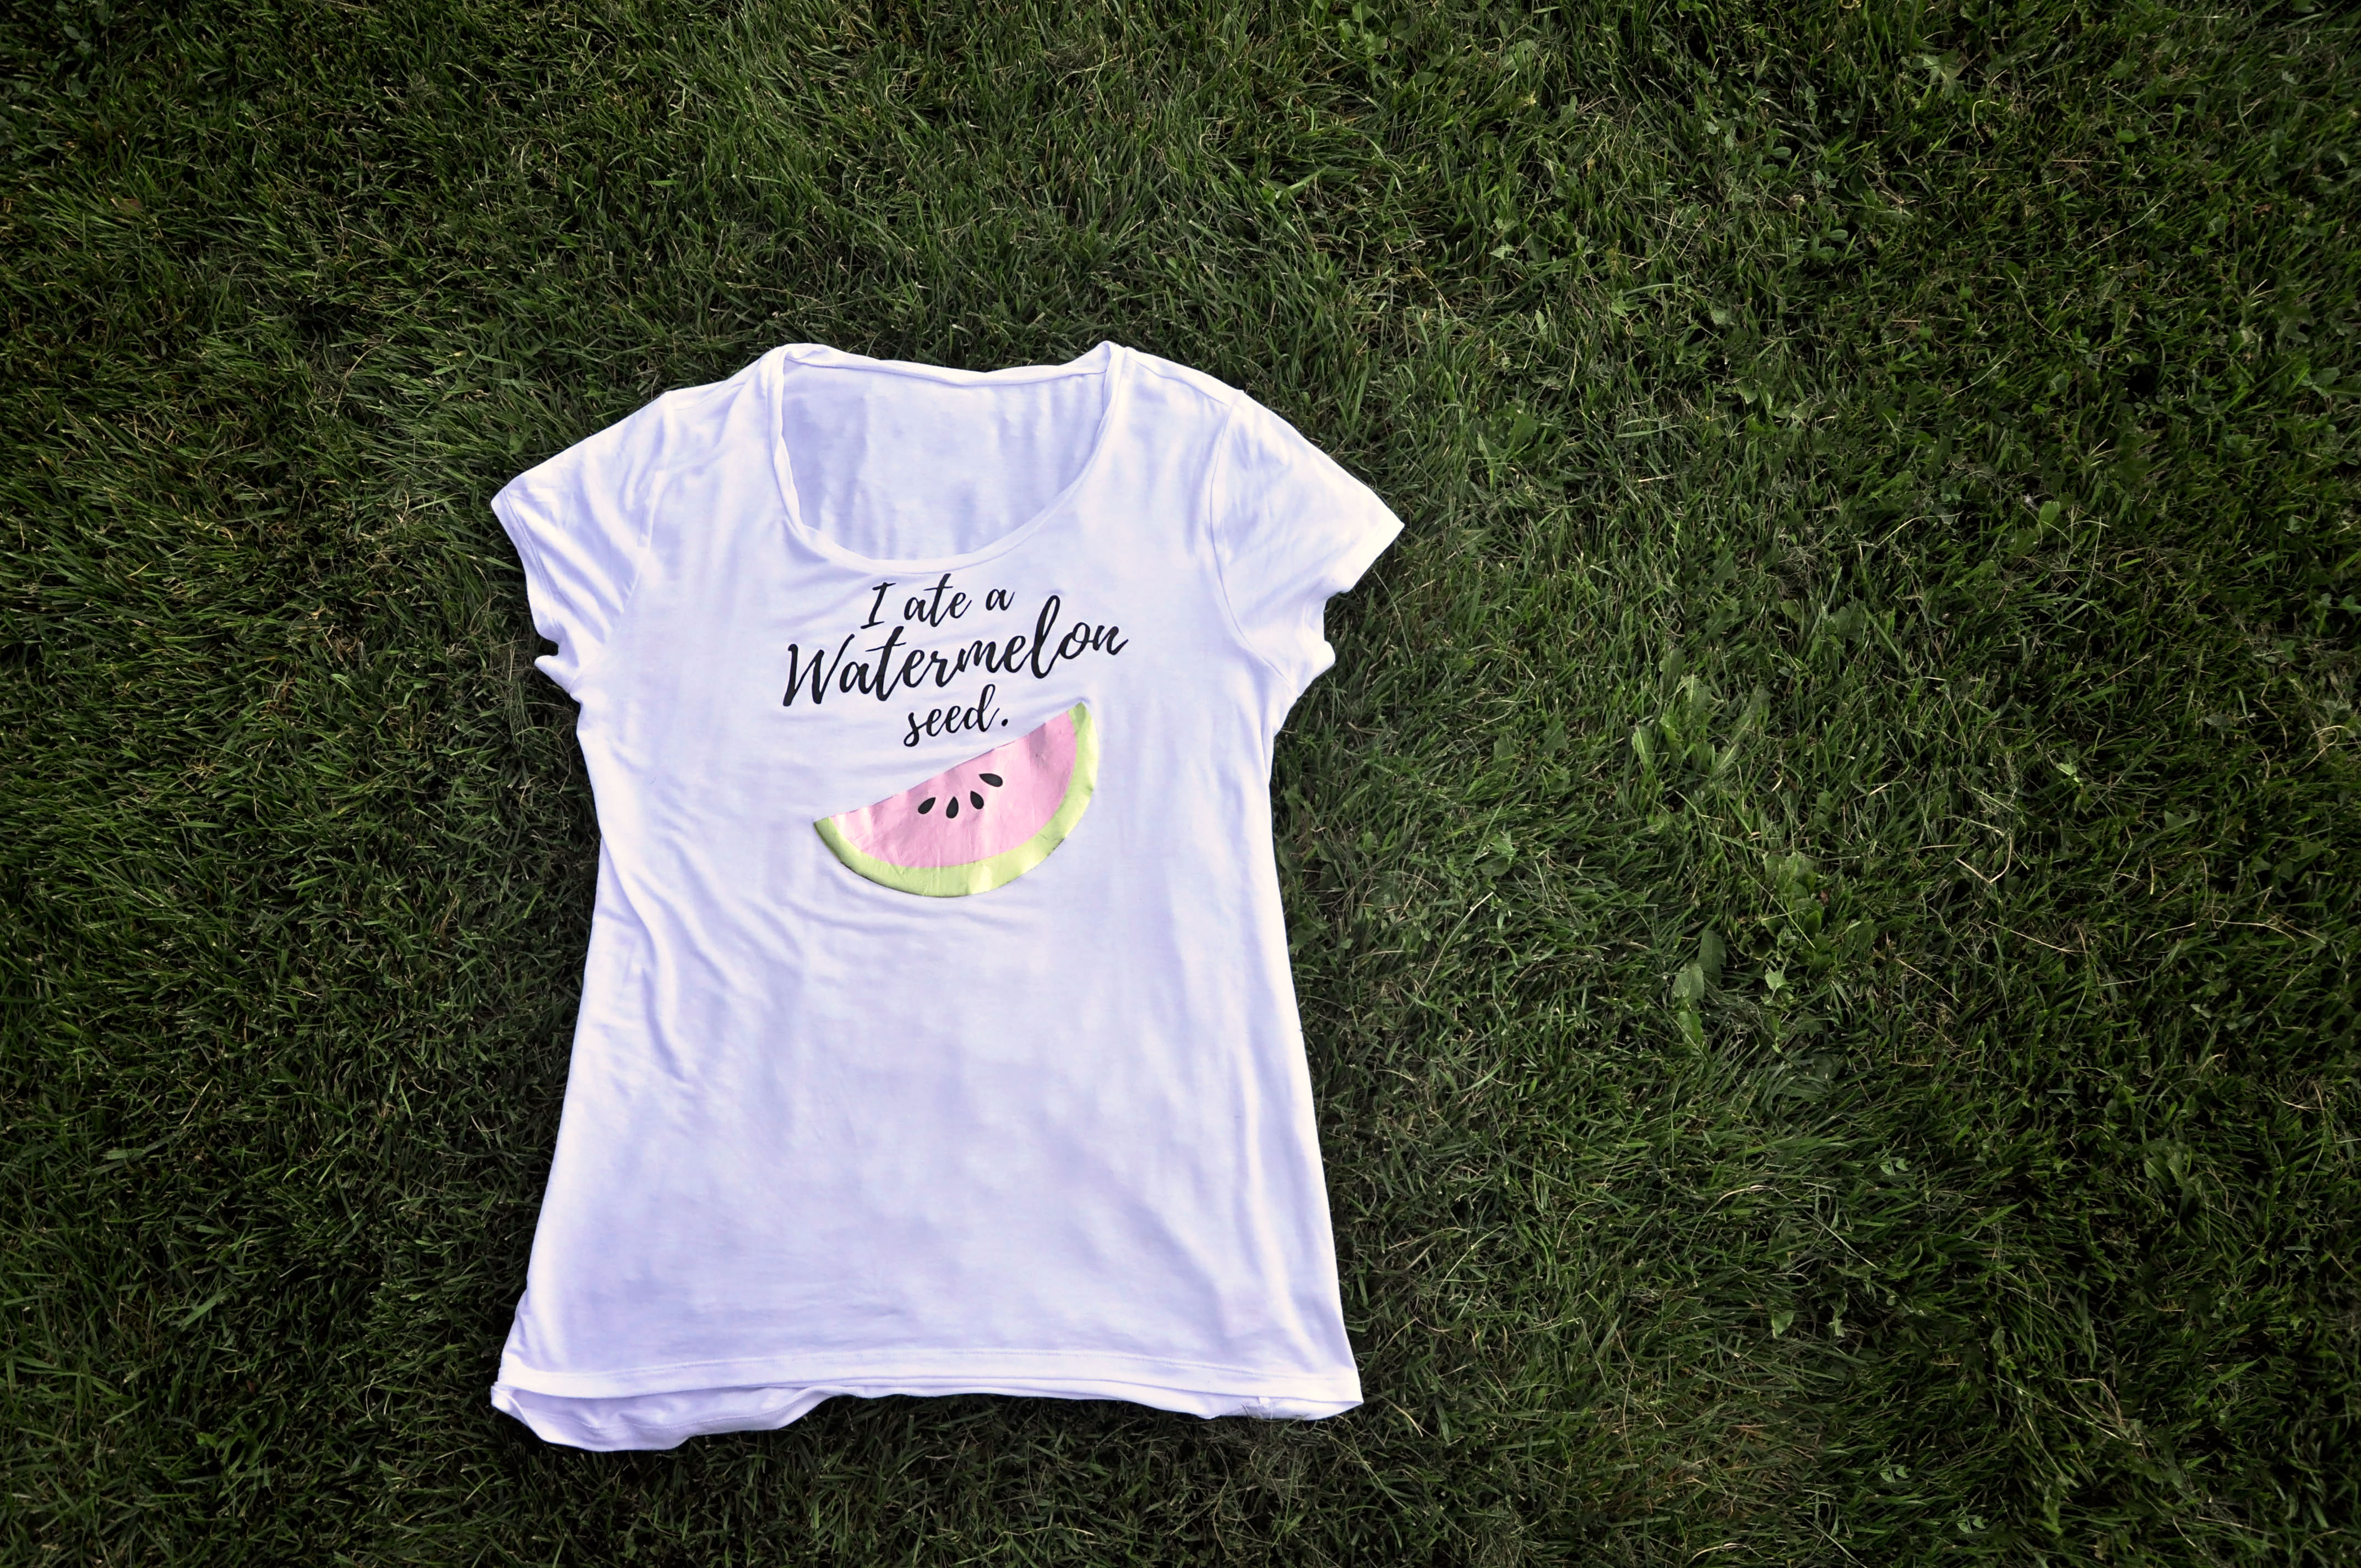 DIY Maternity T-shirt using your Cricut machine!